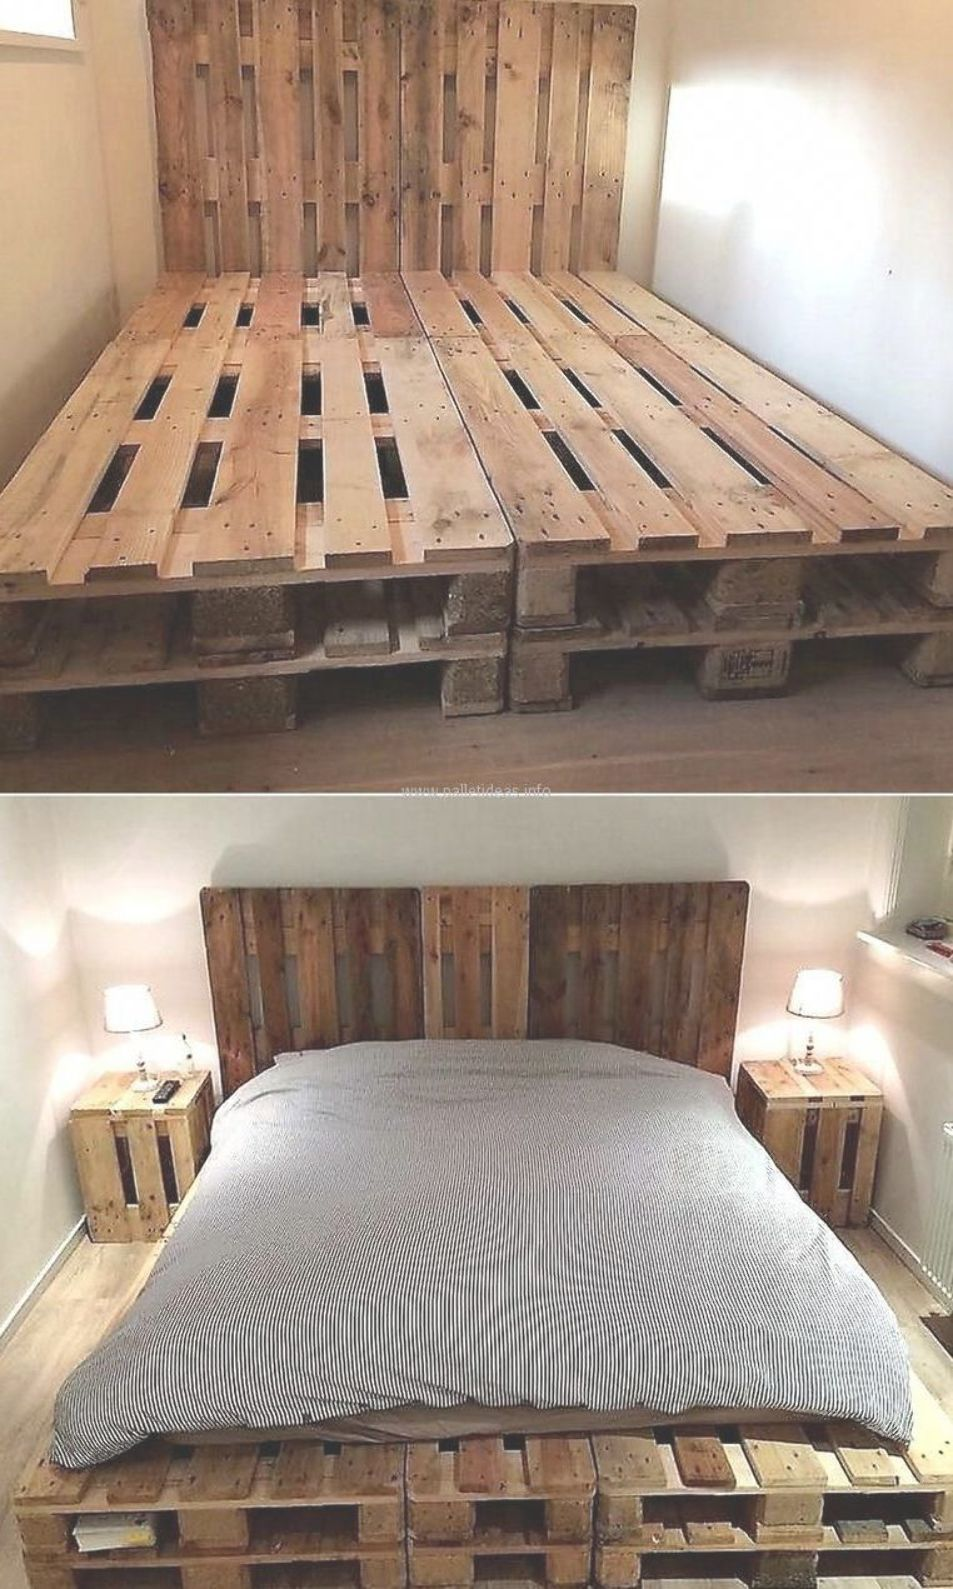 Now Come To An Idea Of Creating A Bed With Pallets With The Tall Headboard The Idea Is Sim Pallet Furniture Bedroom Pallet Furniture Pallet Projects Furniture